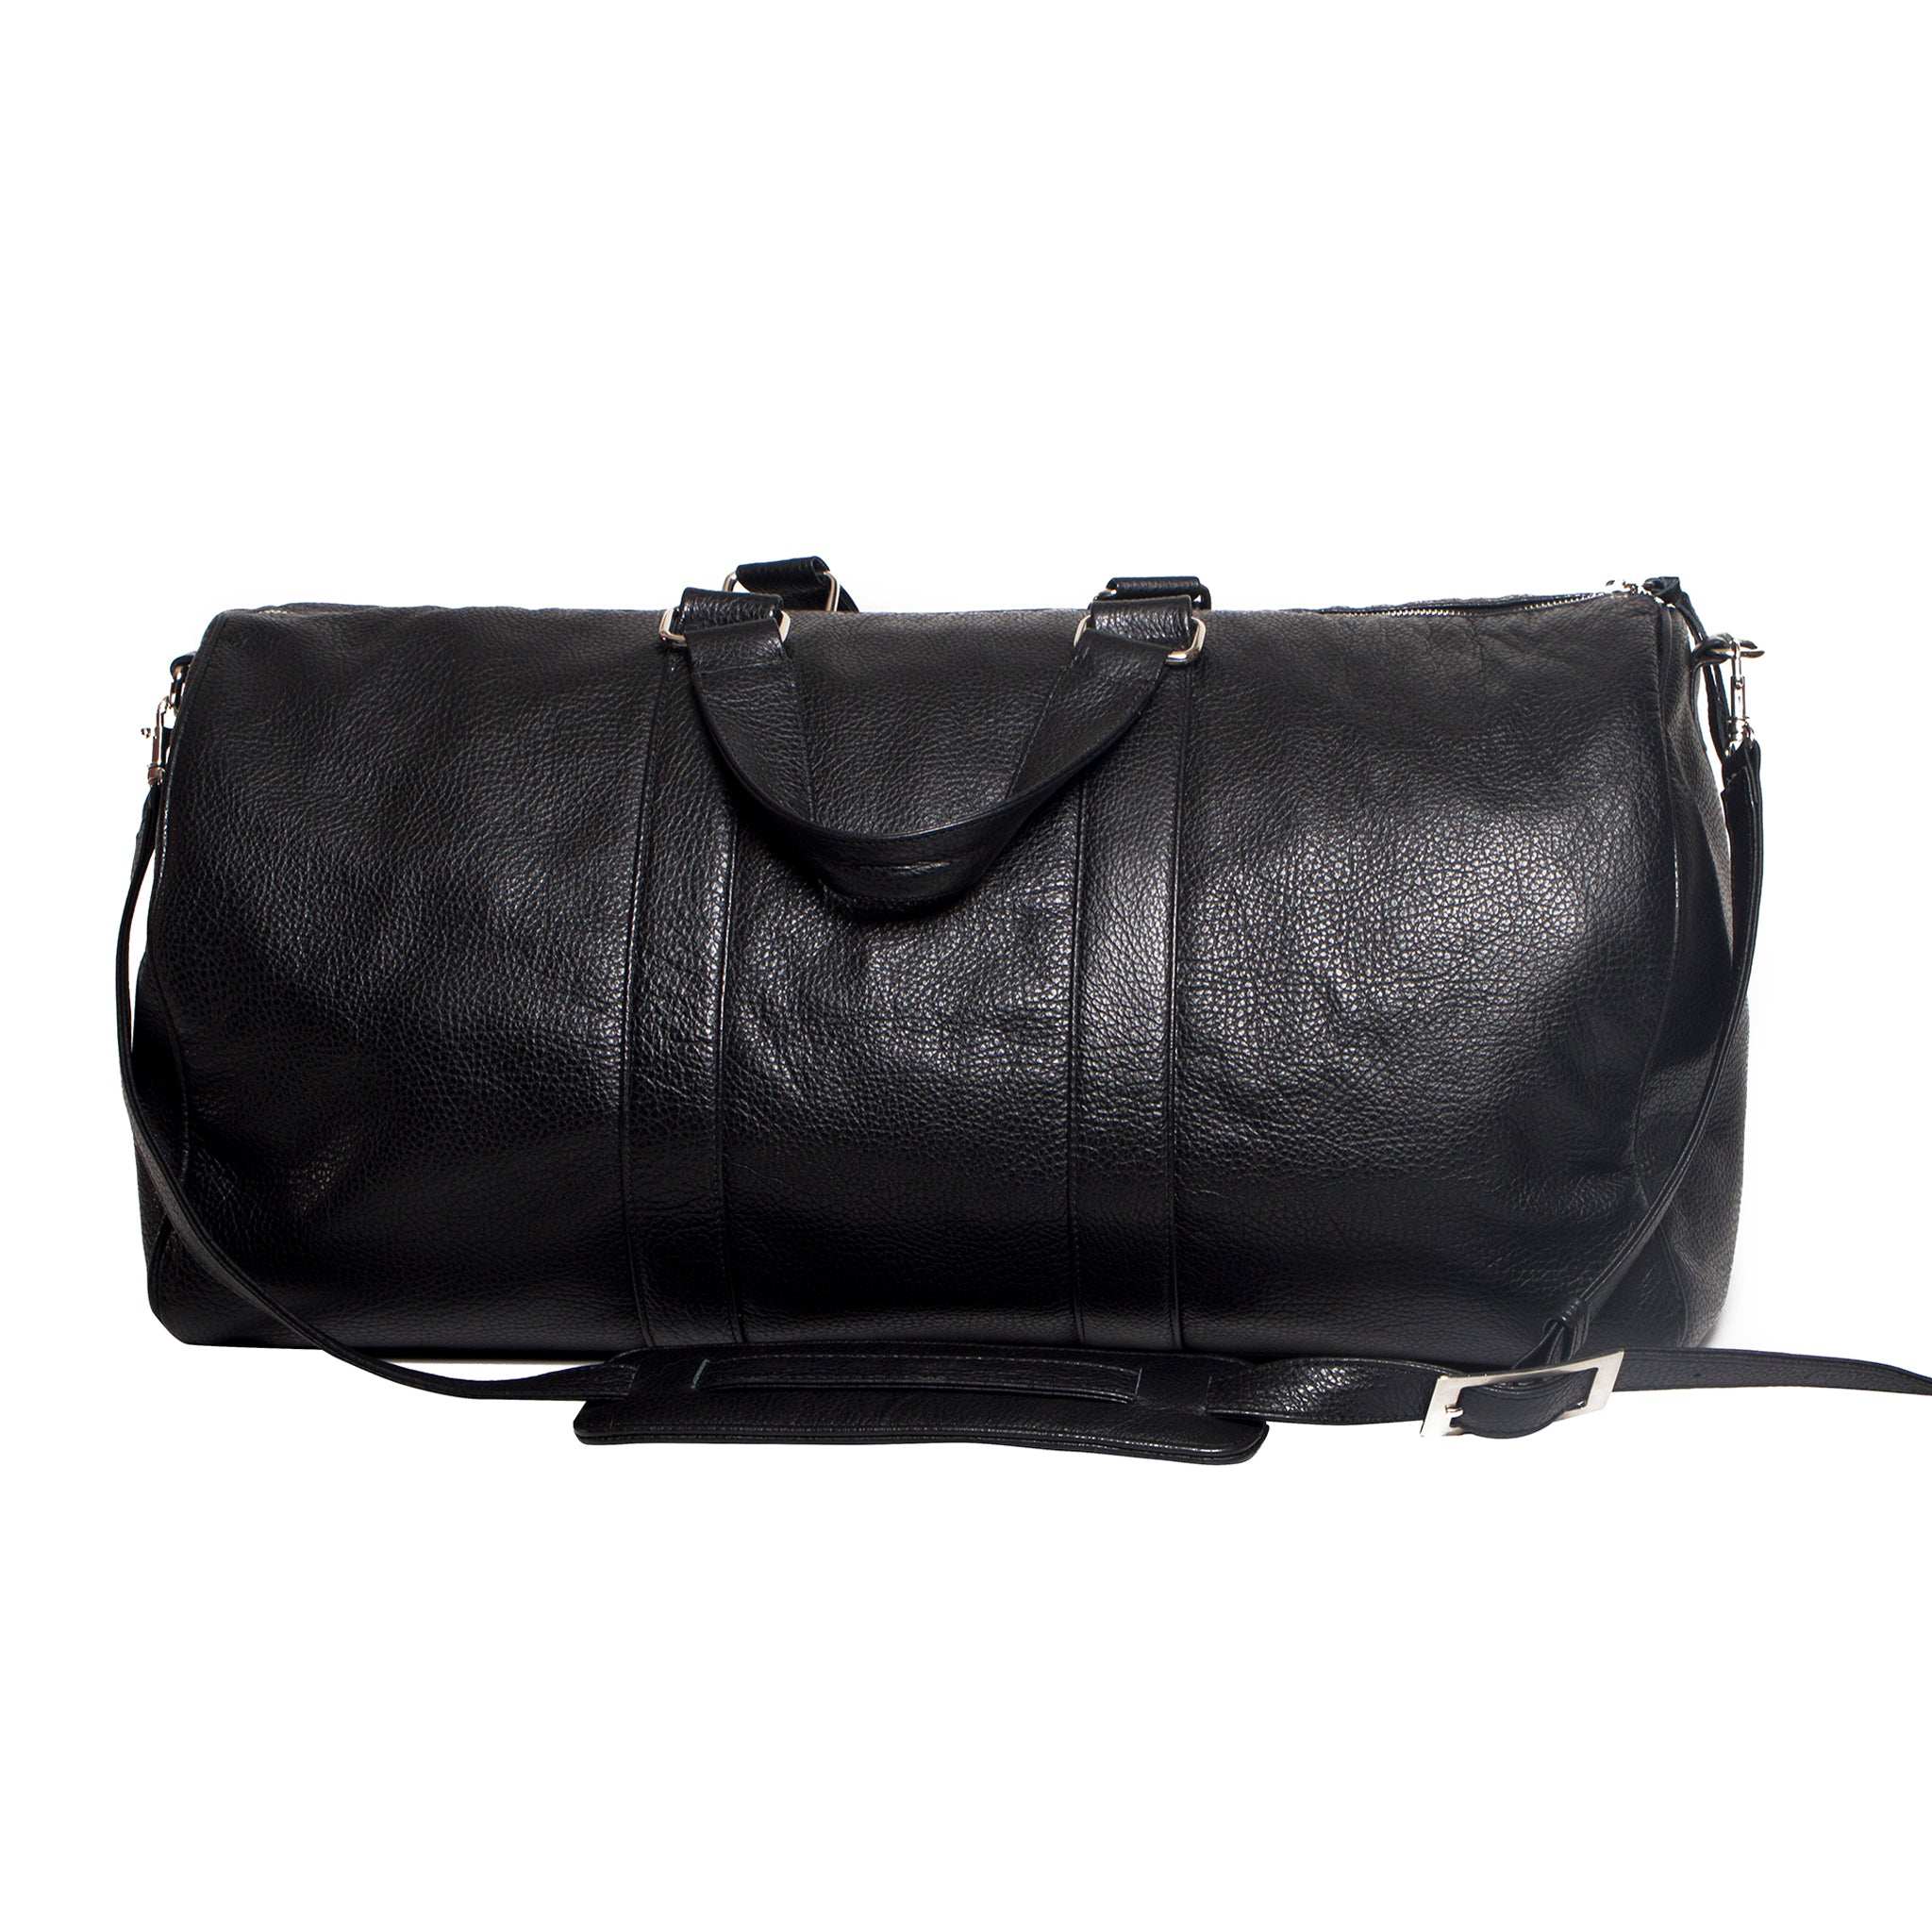 Black Nissi Travel Bag